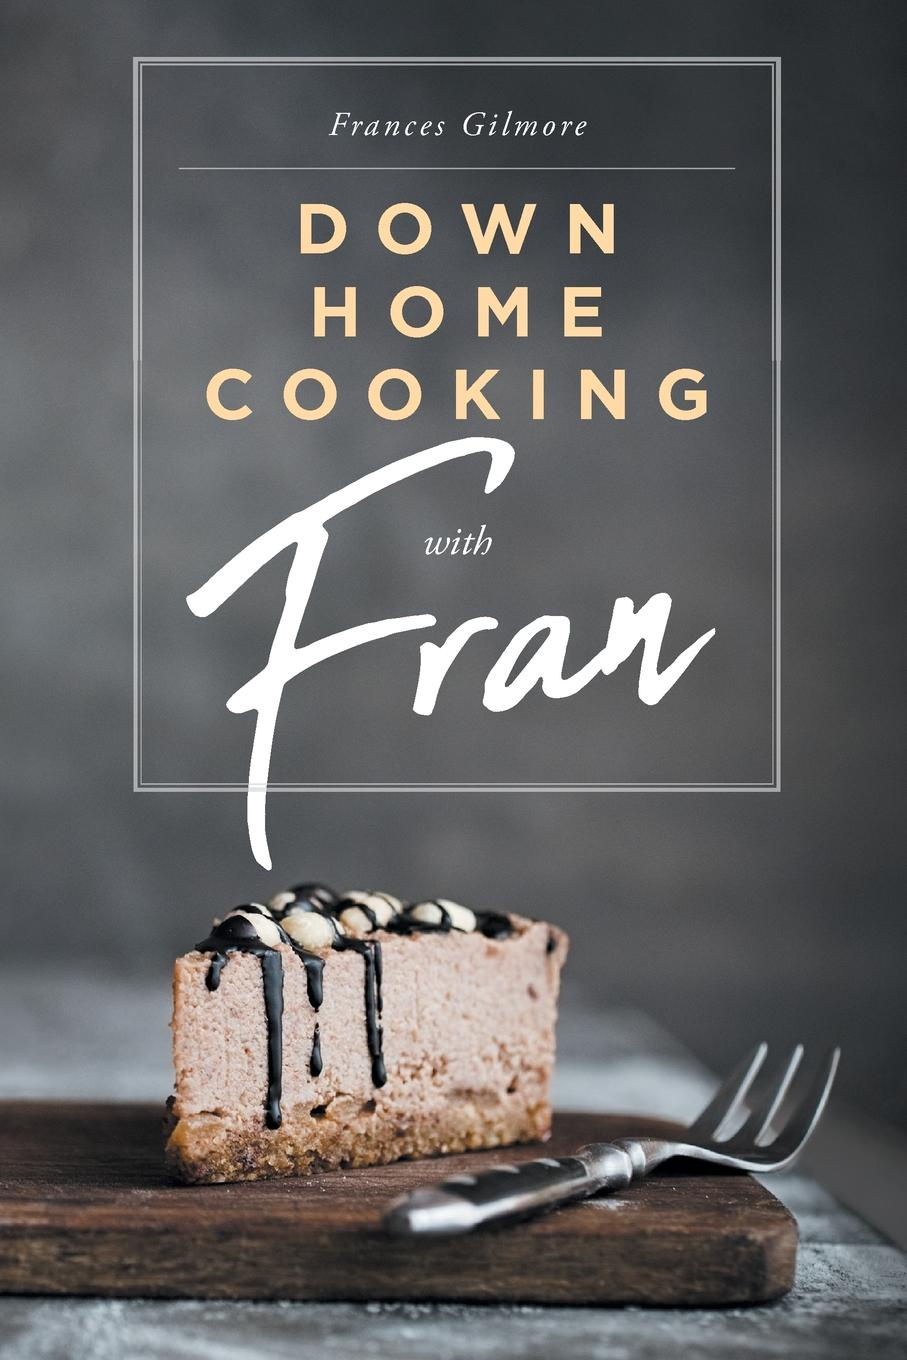 Frances Gilmore Down Home Cooking with Fran my apartment